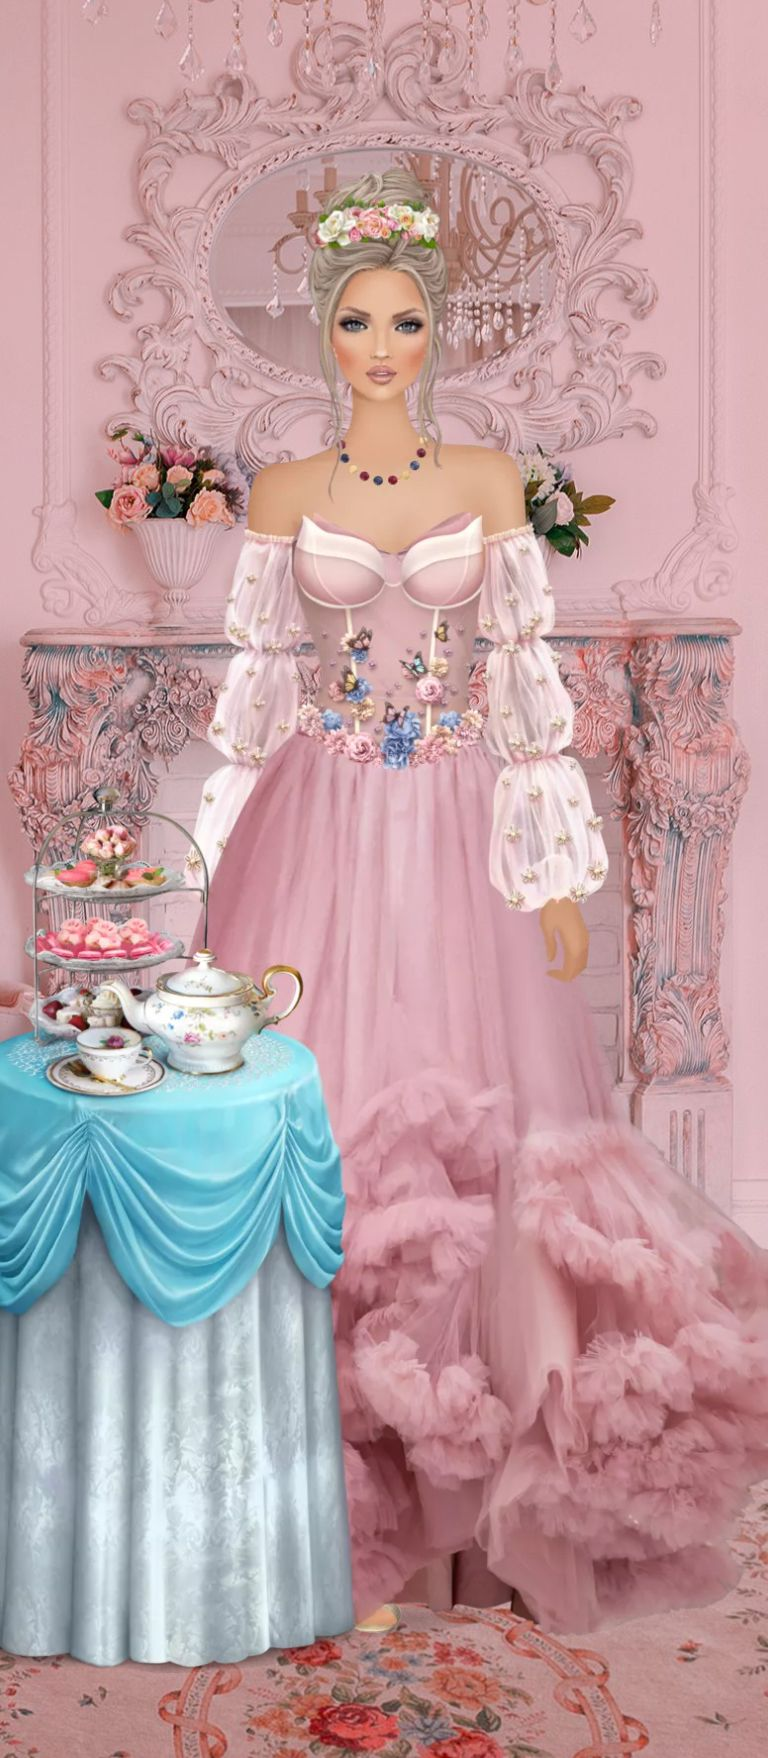 Pin By Felice Navidad On Royalty Queens Knights In 2021 Pink Dress Victorian Dress Pink [ 1758 x 768 Pixel ]